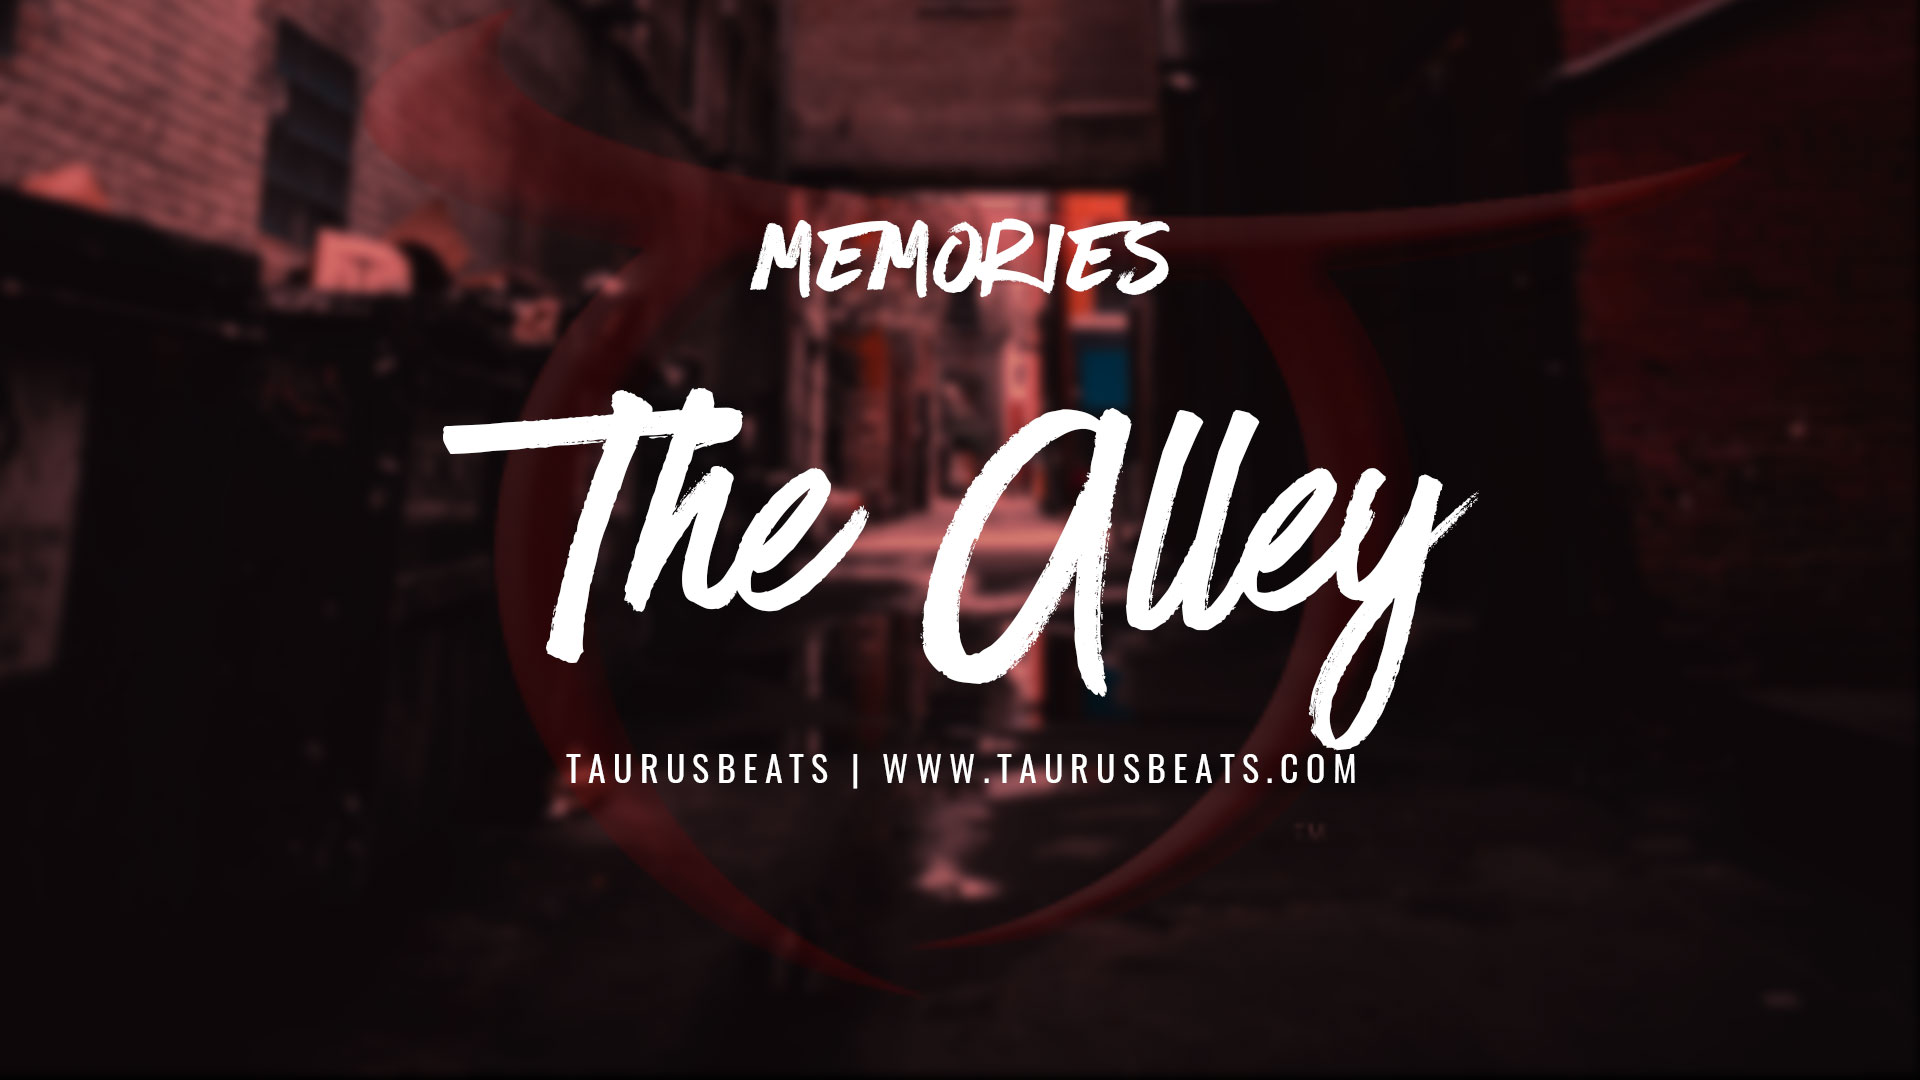 image for The Alley